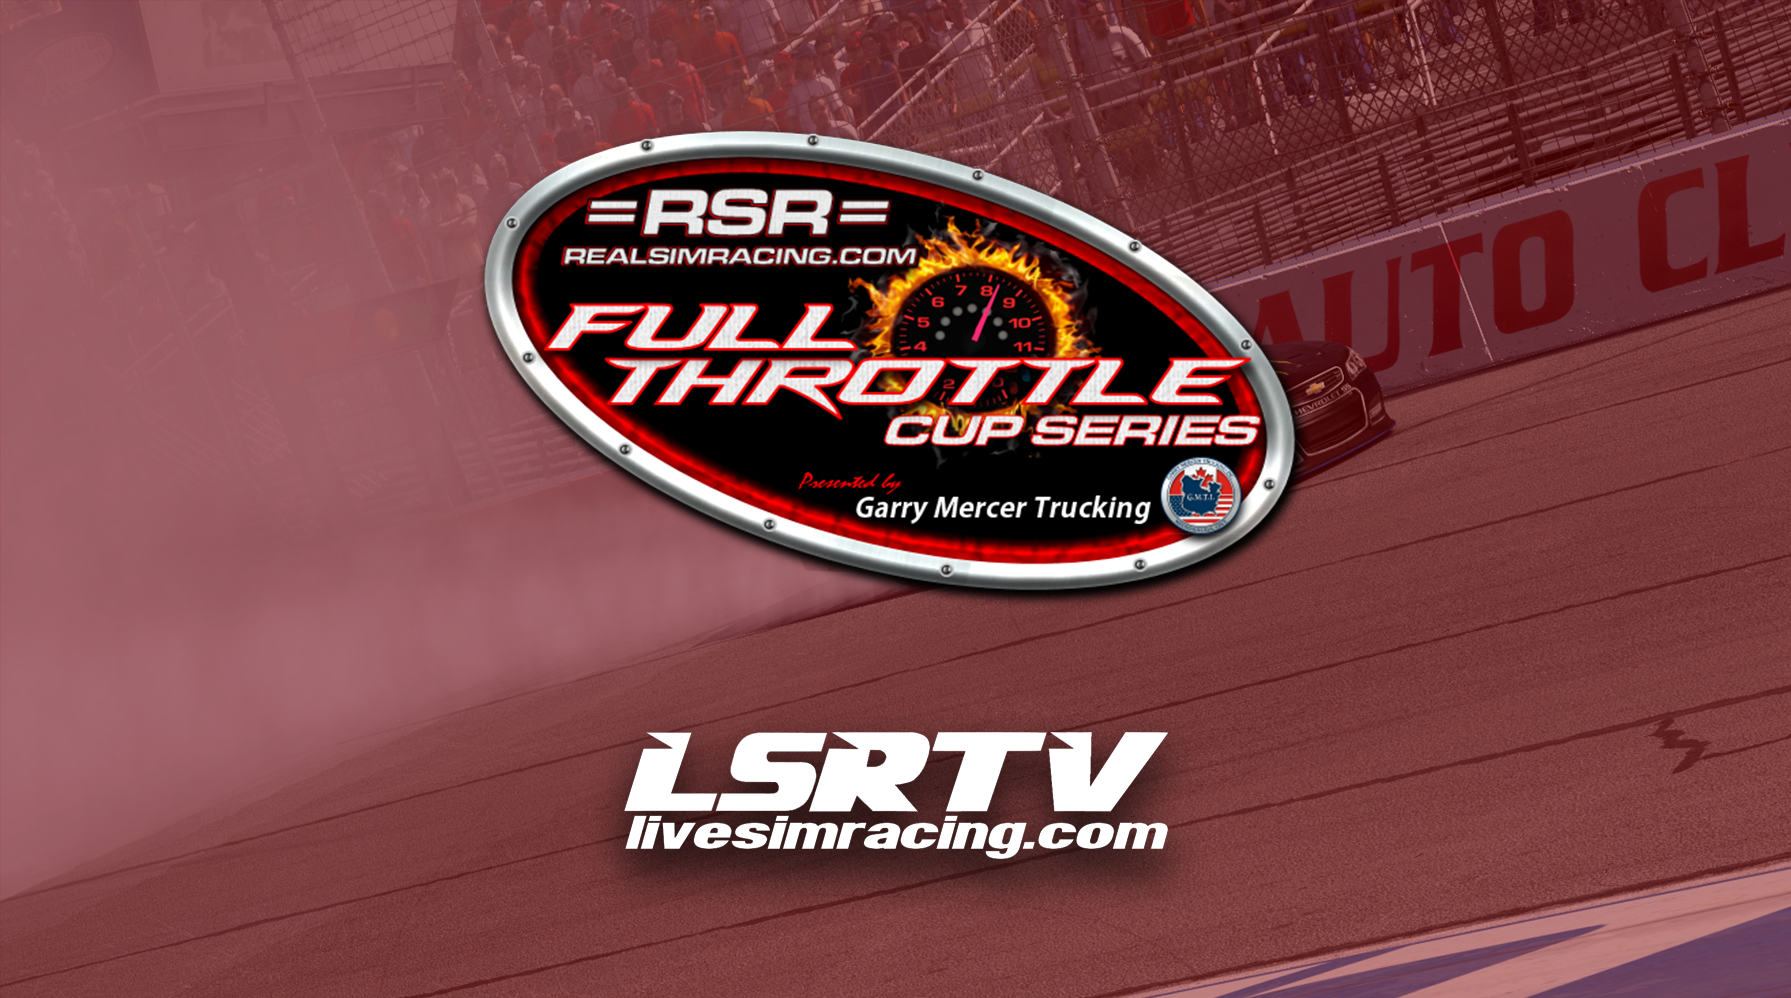 =RSR= Full Throttle Cup Series